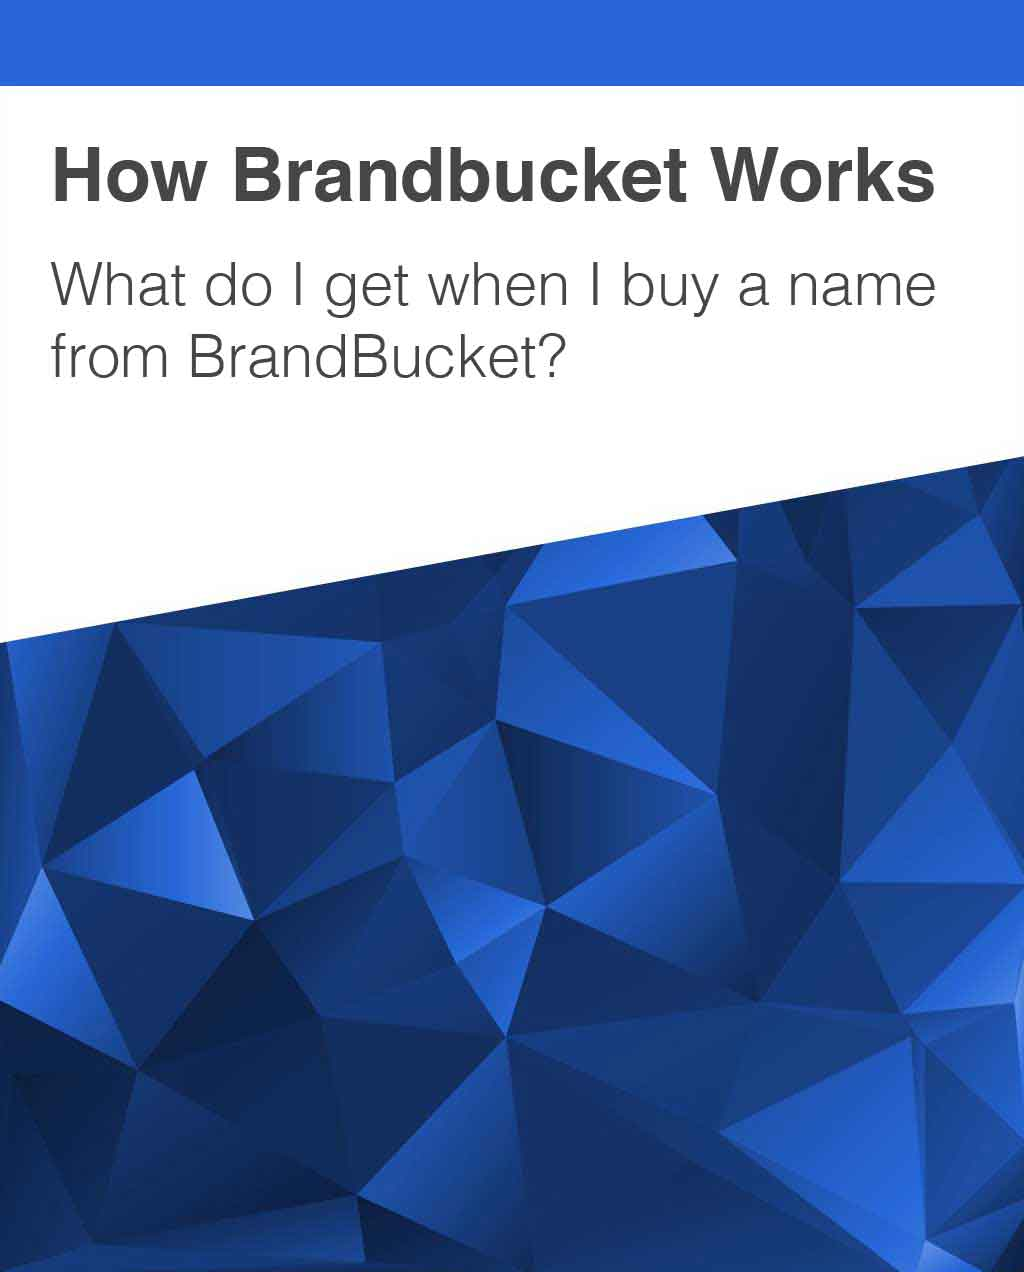 What domain extensions does BrandBucket offer?